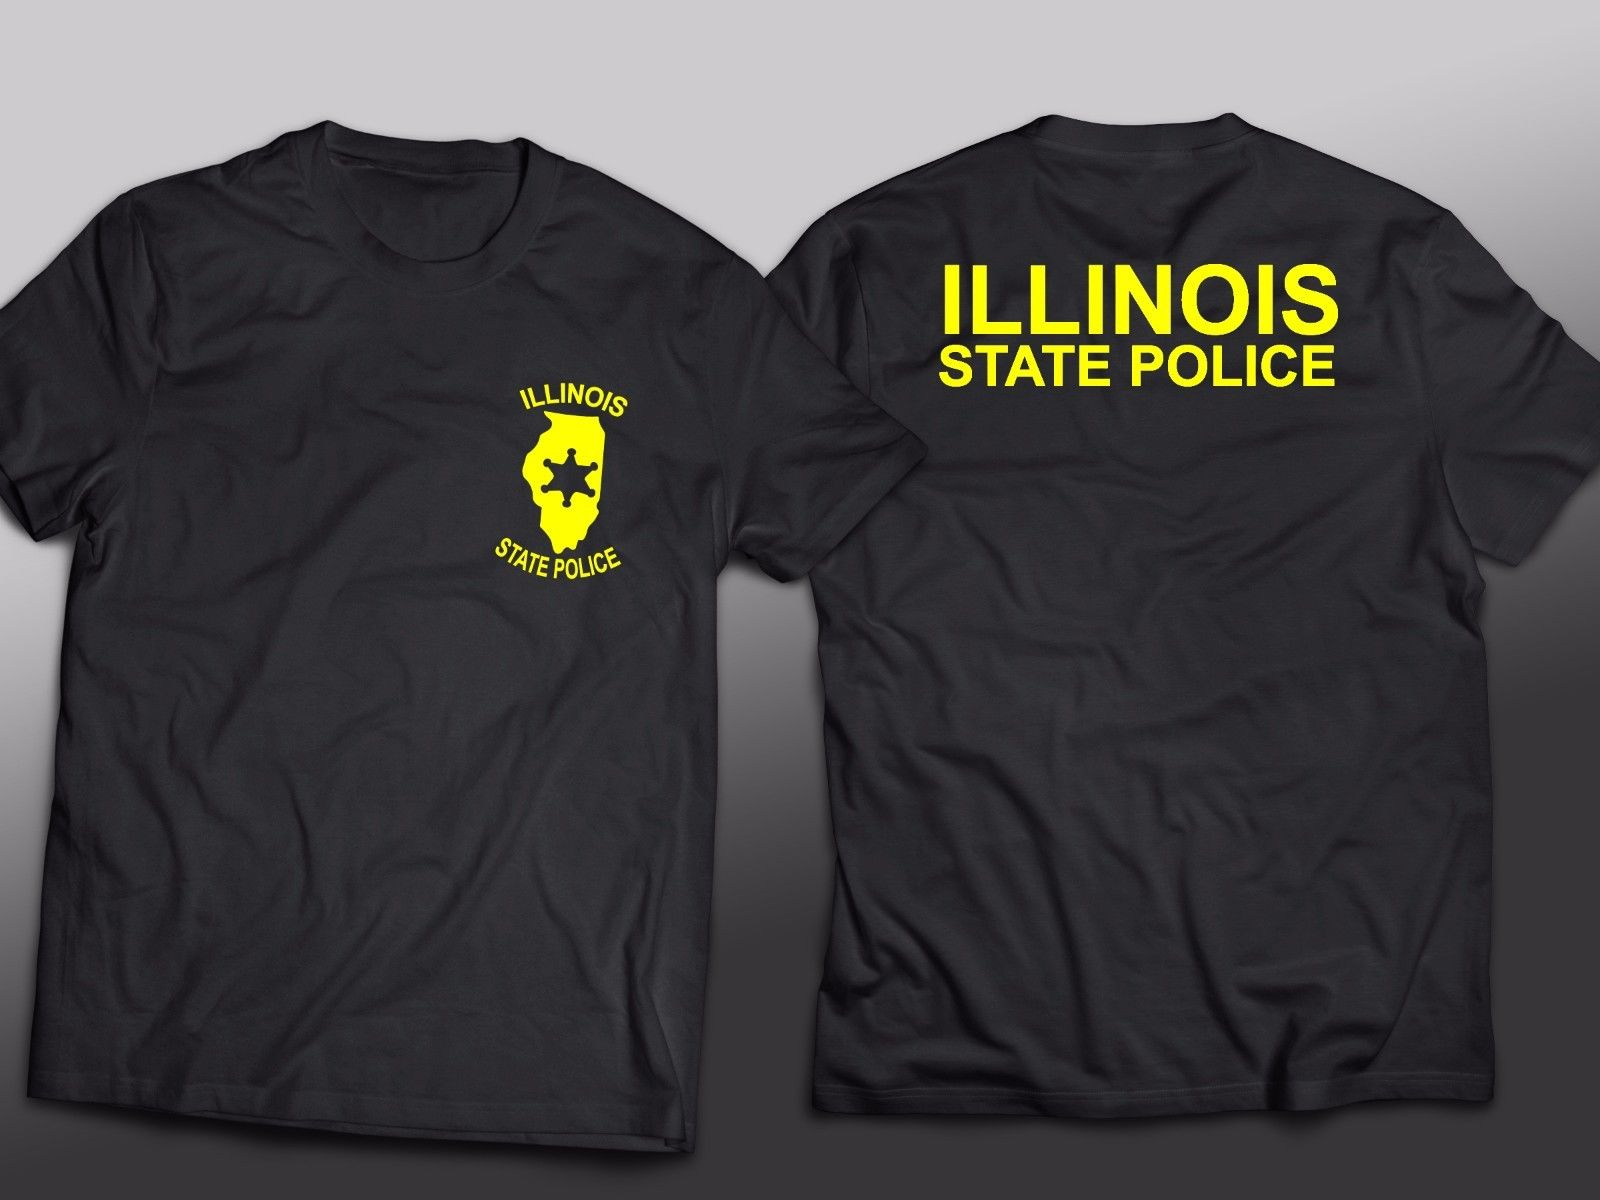 2019 Fashion Hot sale NEW <font><b>Illinois</b></font> Police State Integrity Service PrideT-Shirt Tee Tee shirt image